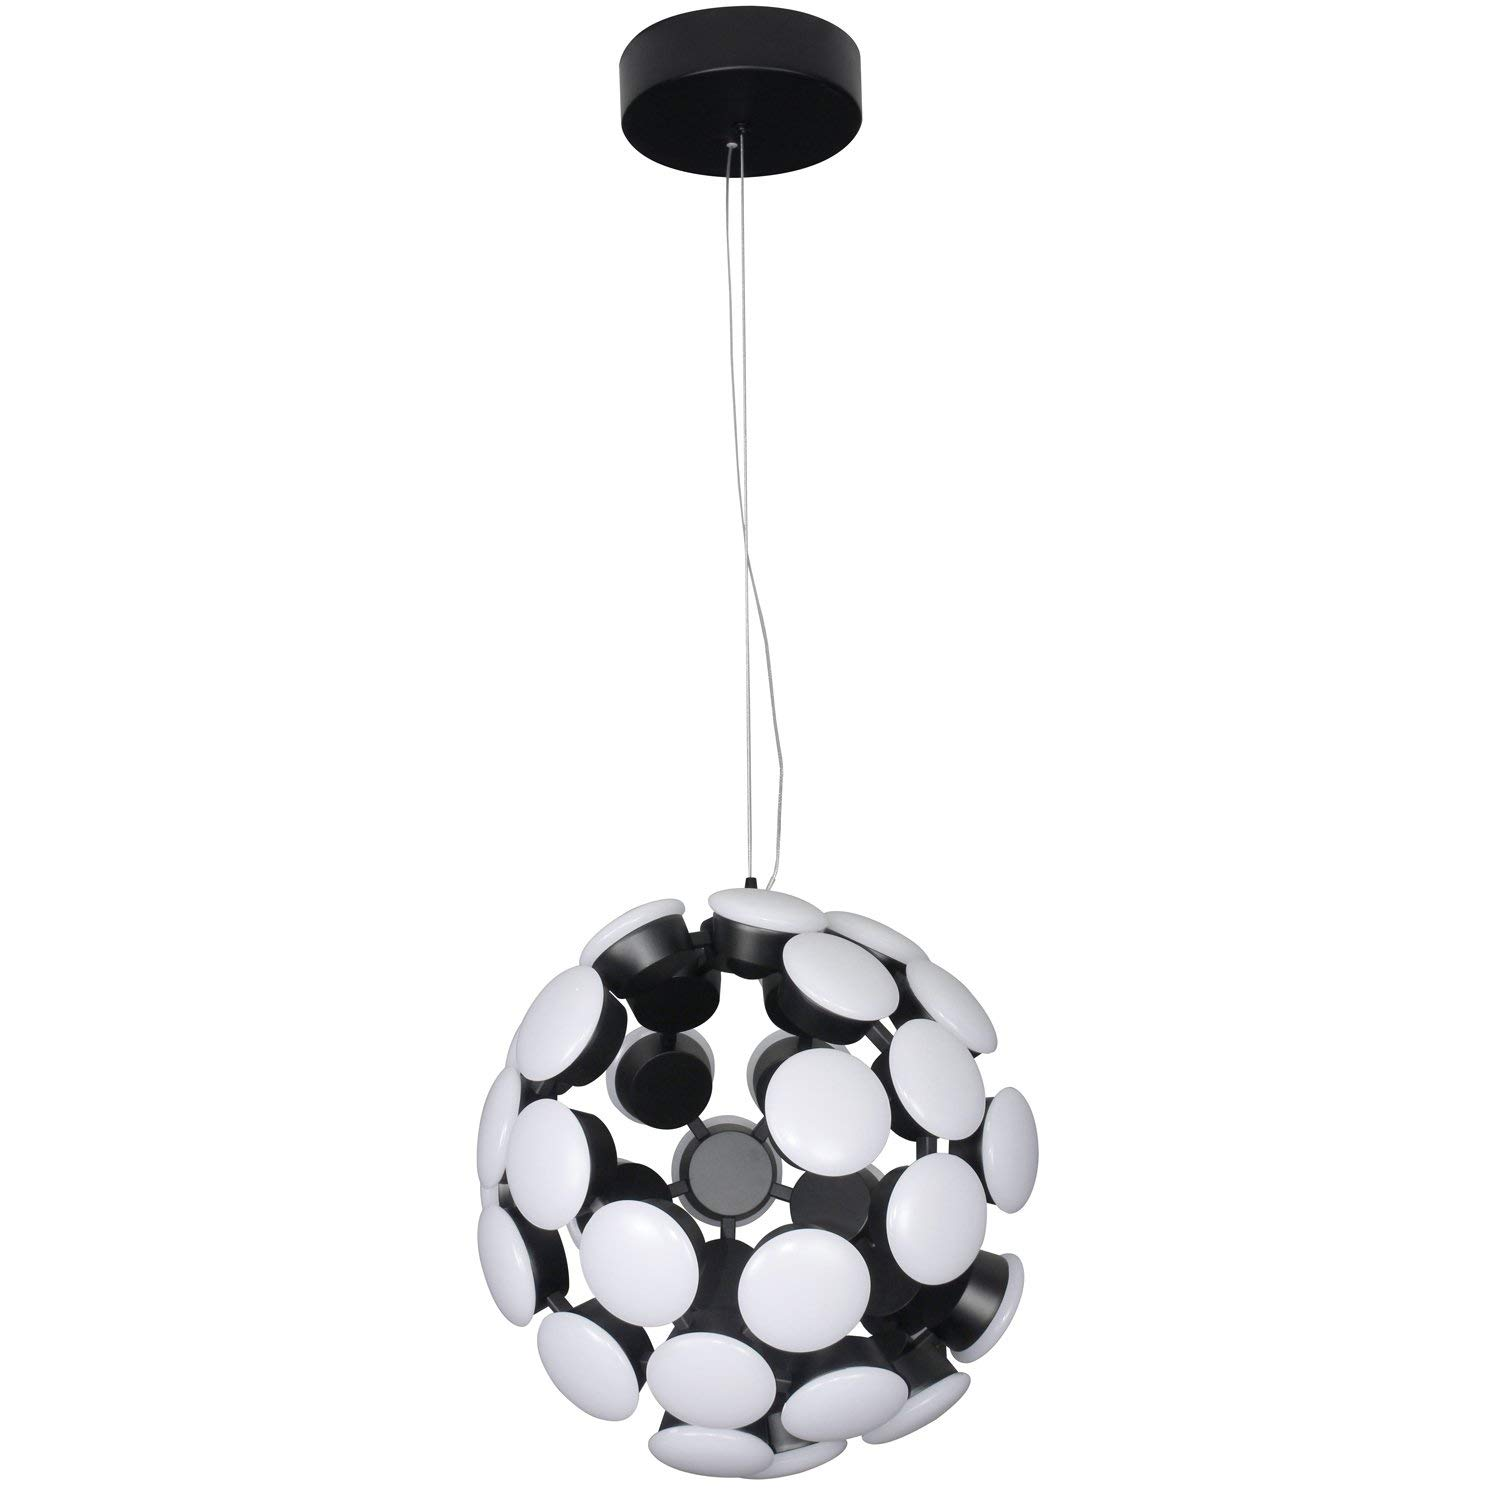 "VONN VMC32610BL Modern 16"" Celestial Mutli-Light Led Chandelier, Adjustable Hanging Light, Modern Globe Chandelier Lighting, Kastra Collection, 15.55"" x 15.55"" x 134.25"", Black"